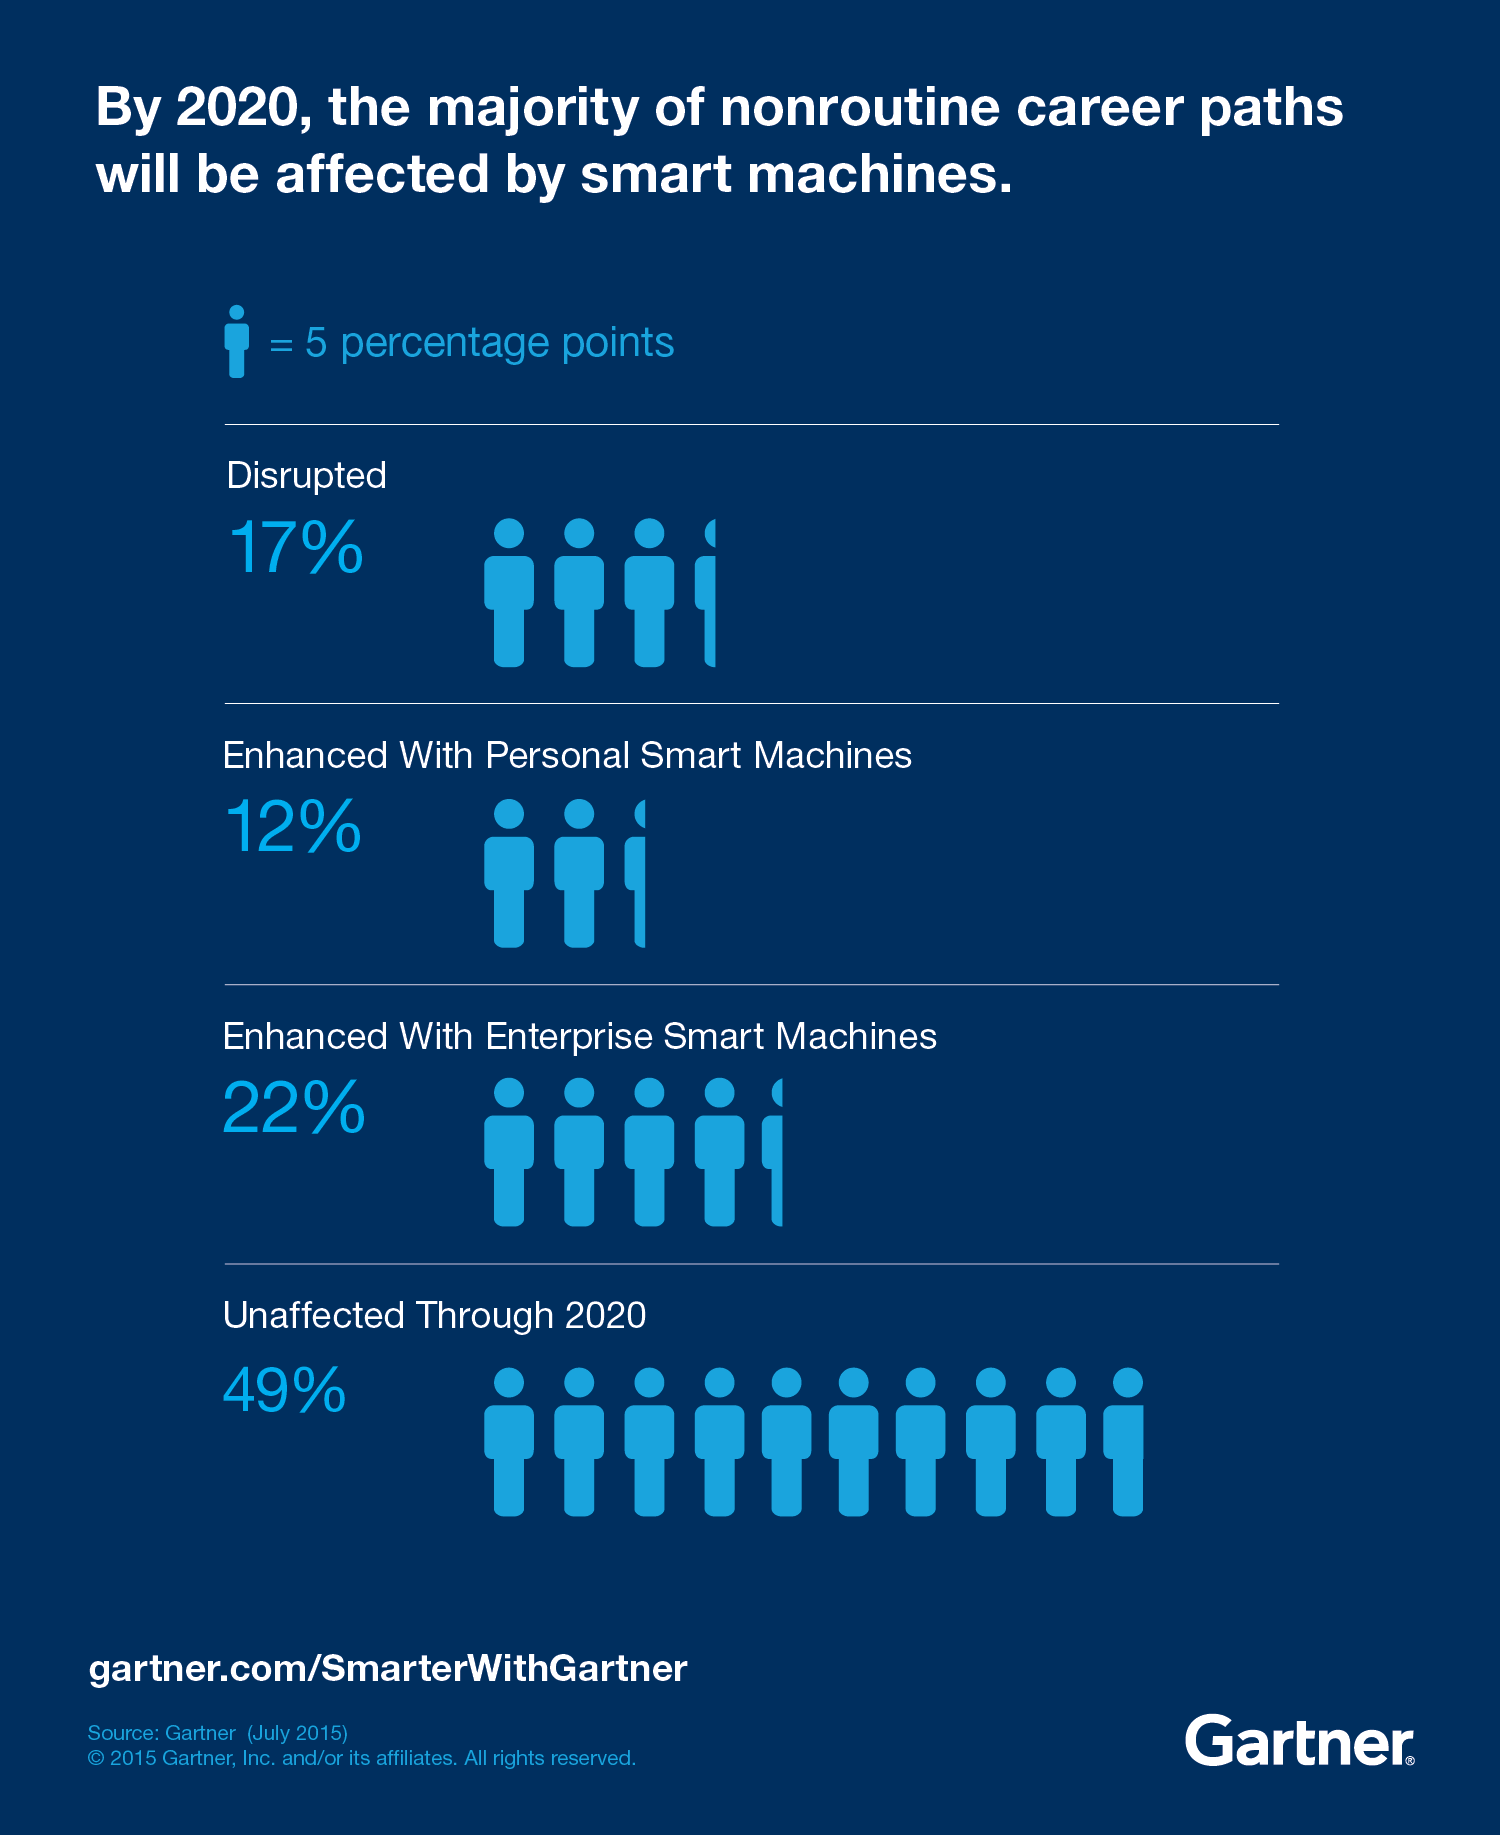 By 2020, the majority of nonroutine career paths will be affected by smart machines.